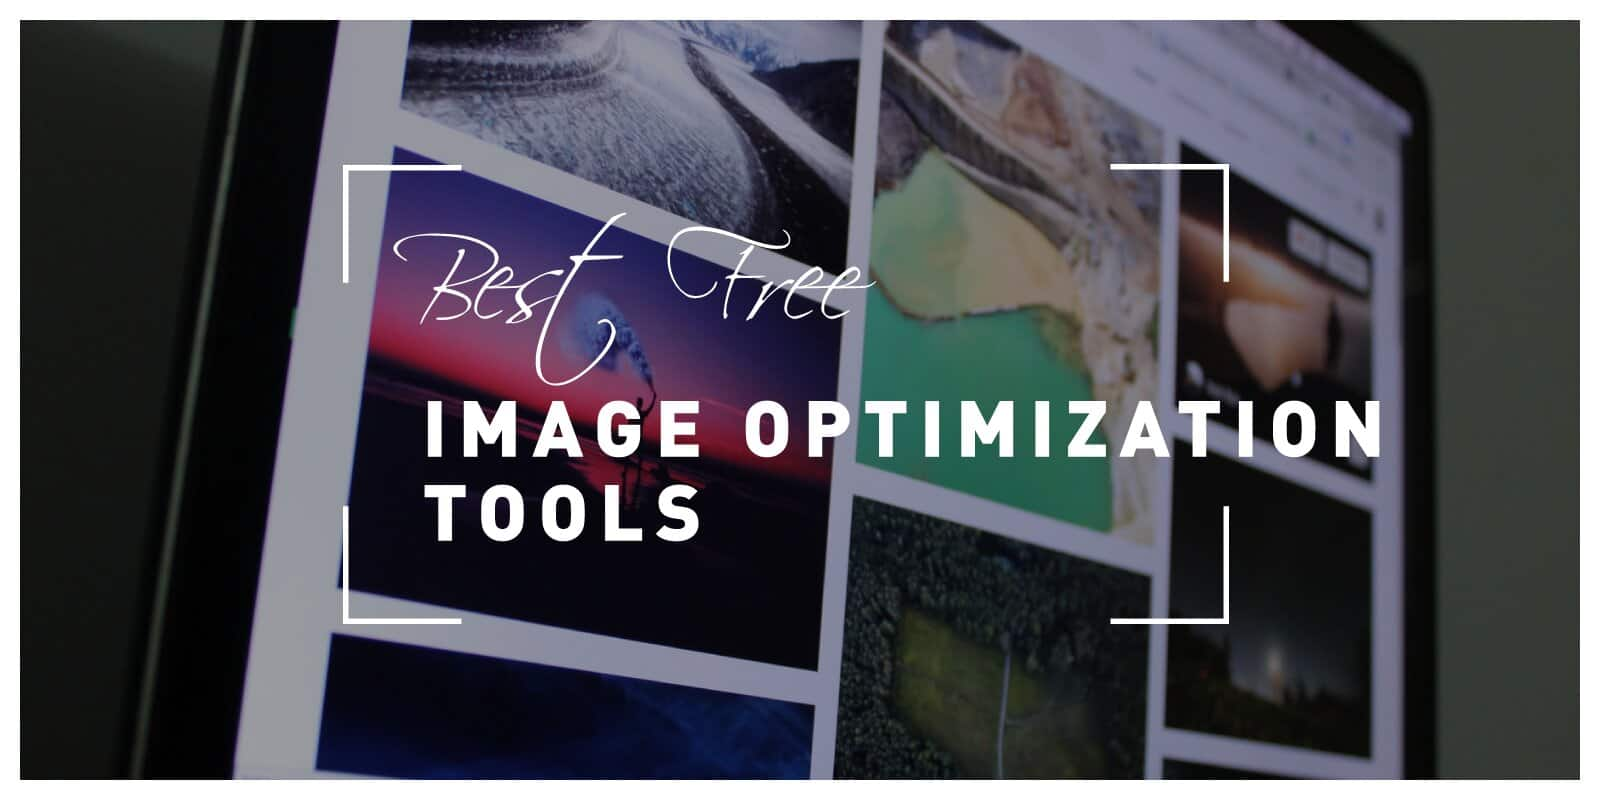 Best Free Image Optimization Tools for Image Compression: Significantly Improve Website Performance and SEO Ranking